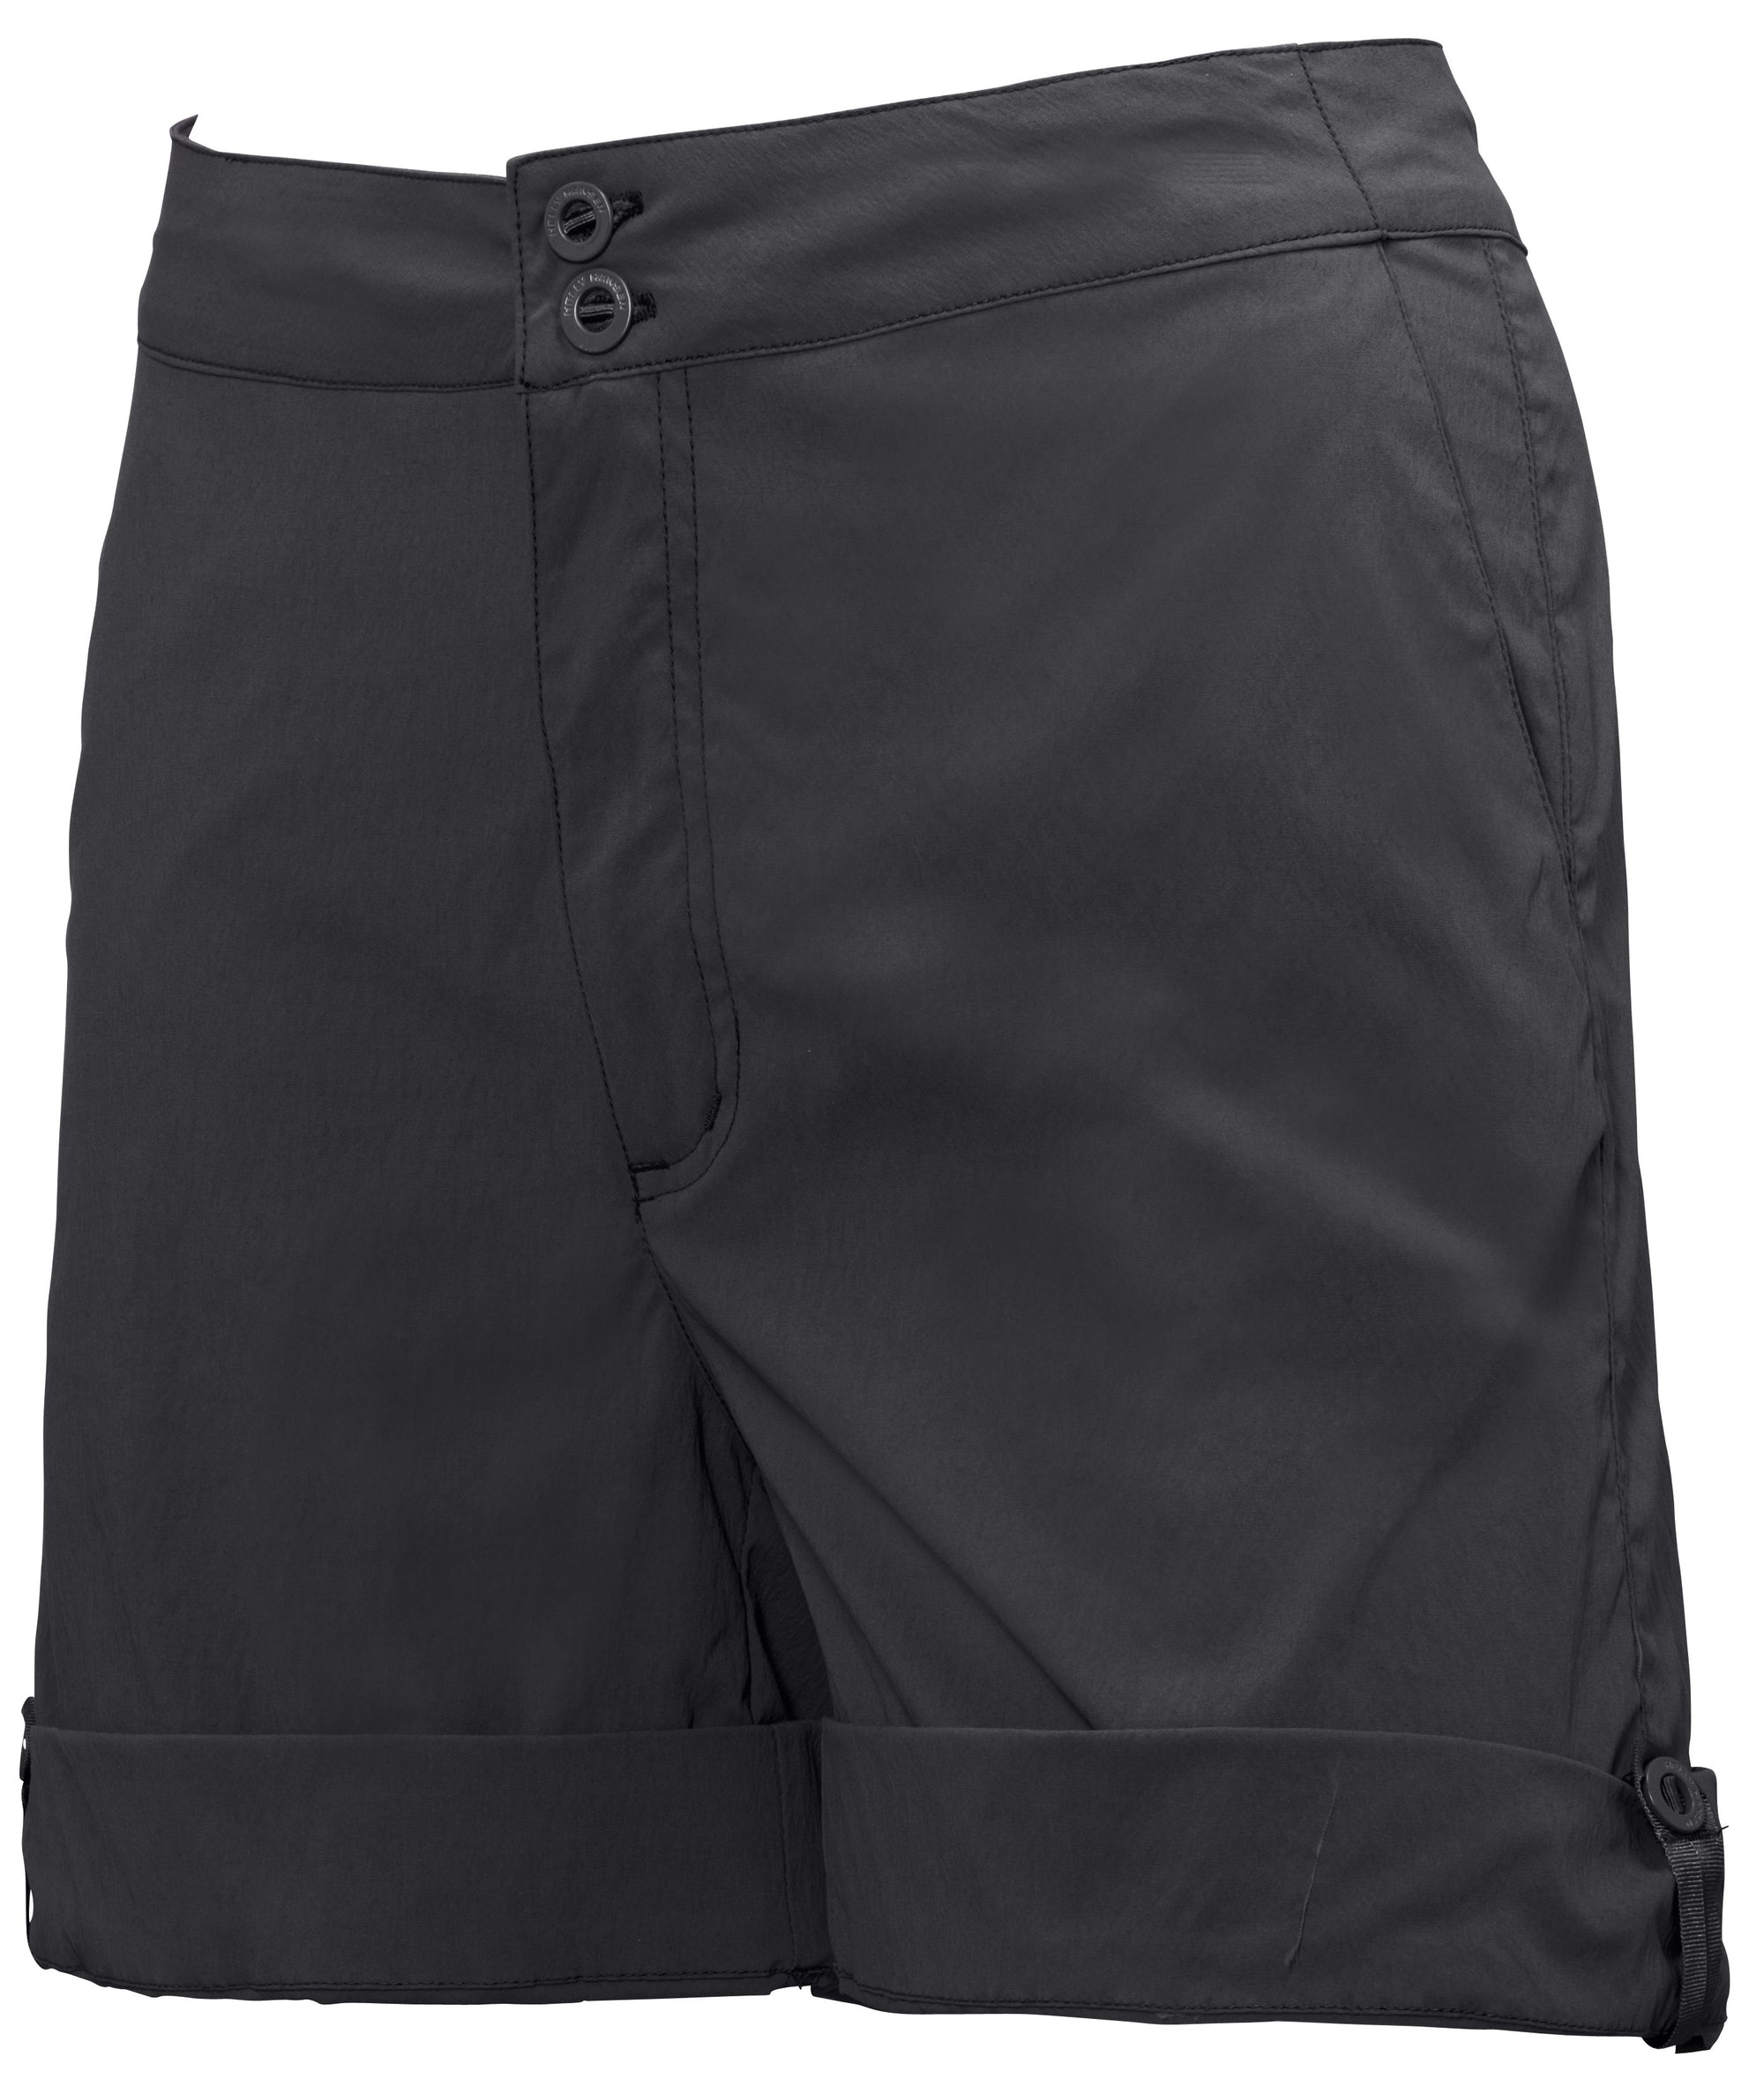 W Saga Shorts Ebony